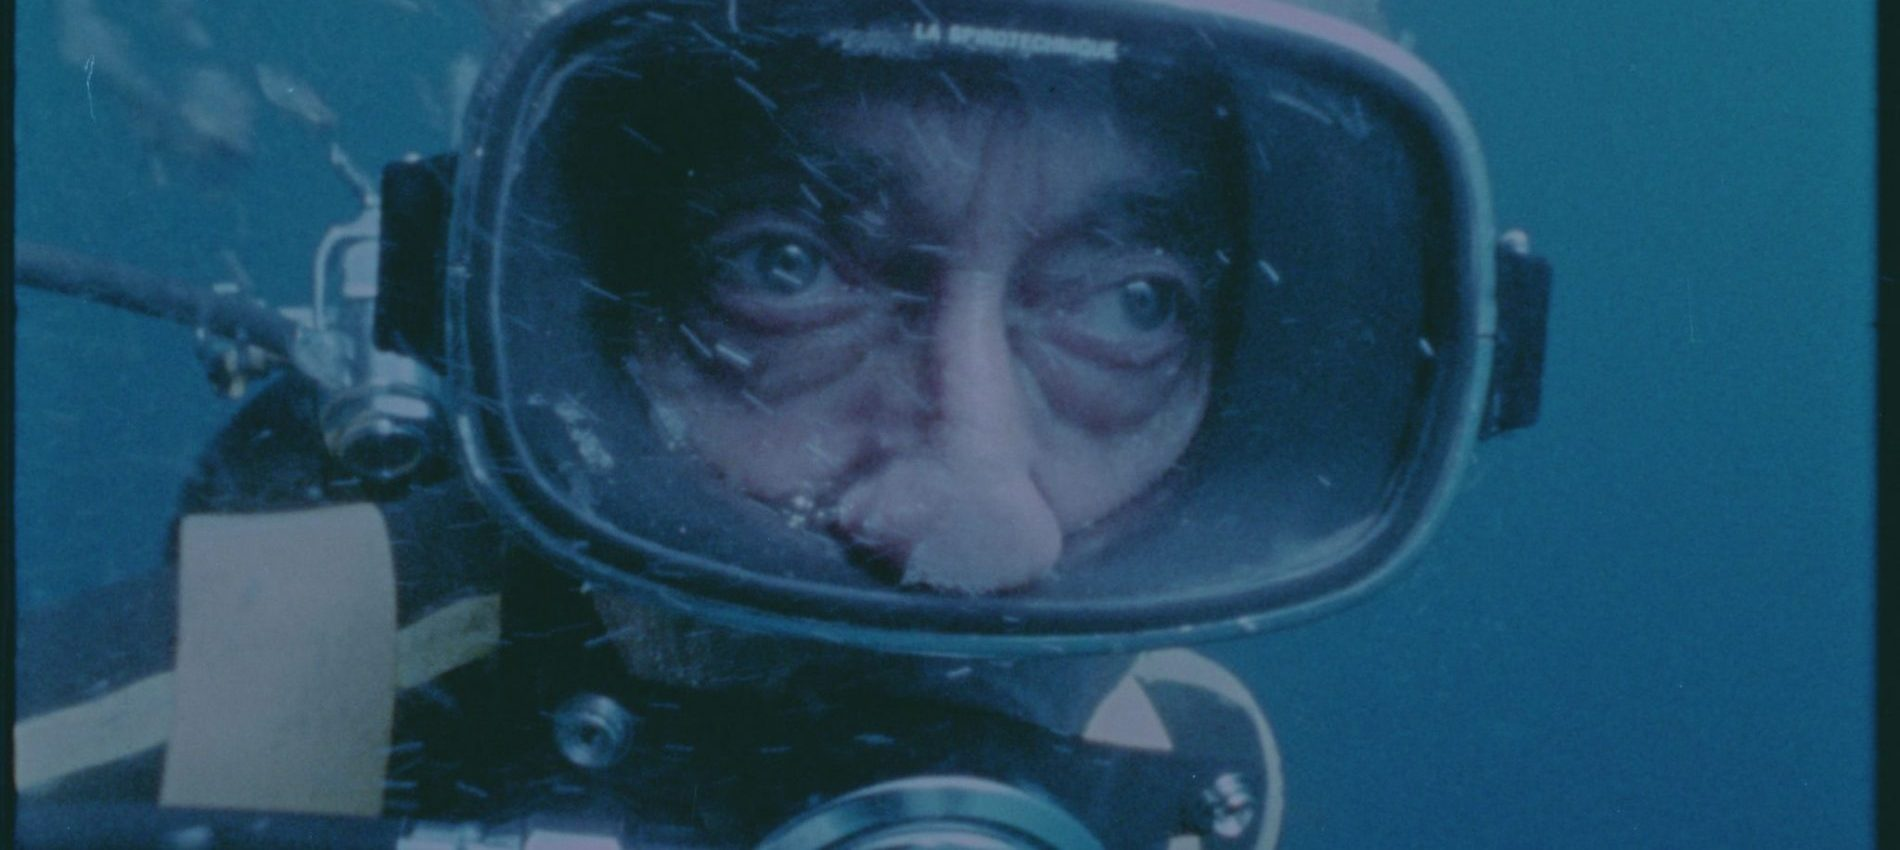 TIFF 2021: Becoming Cousteau Review